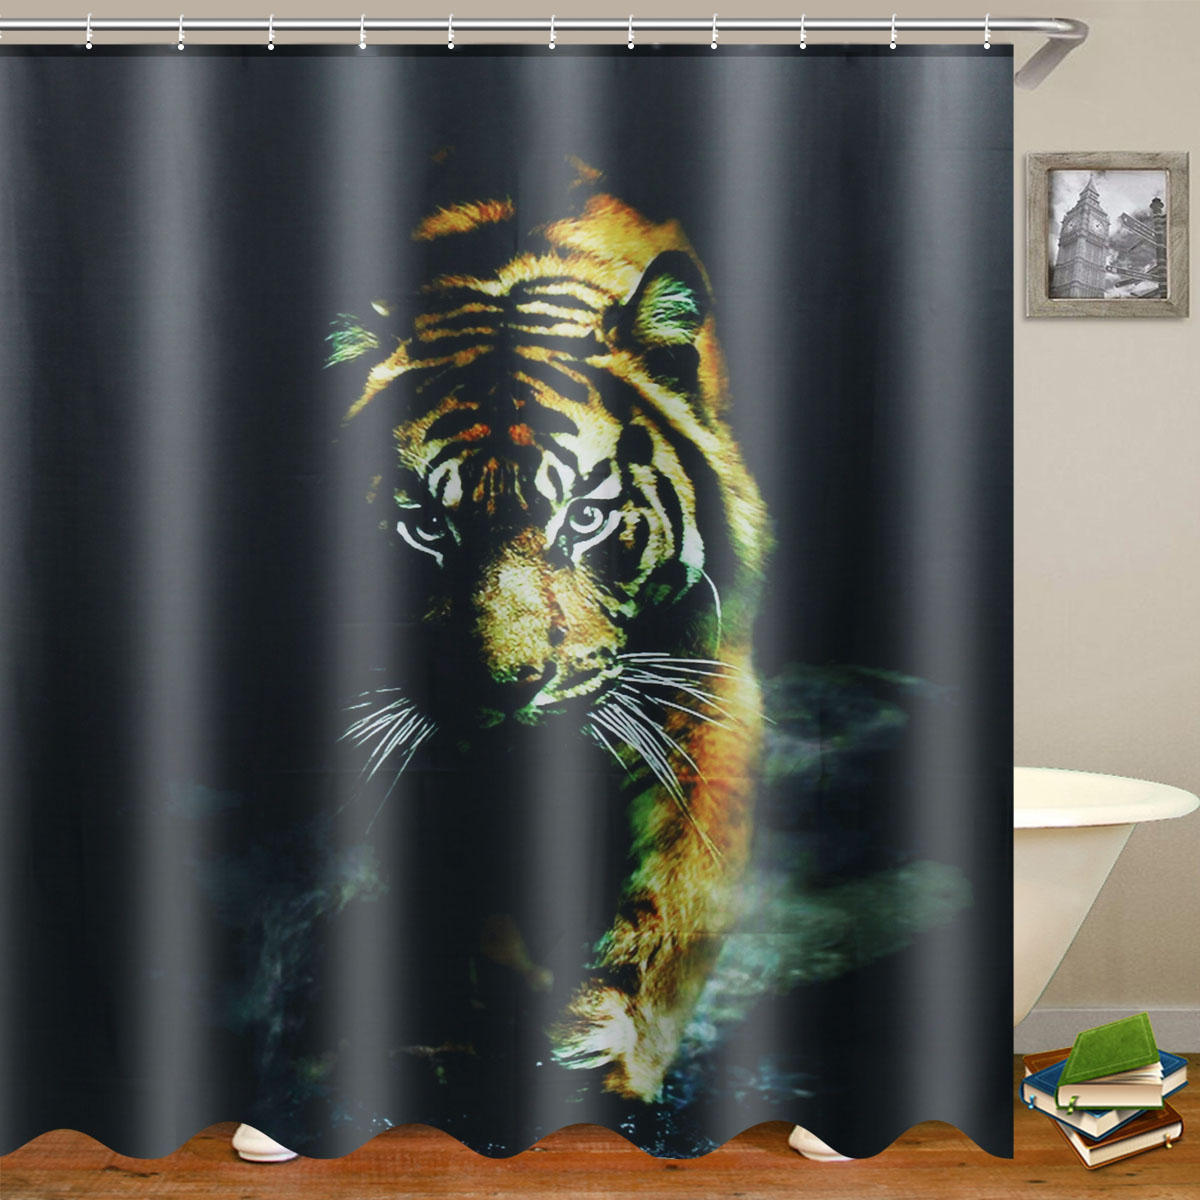 82 Shower Curtain 72